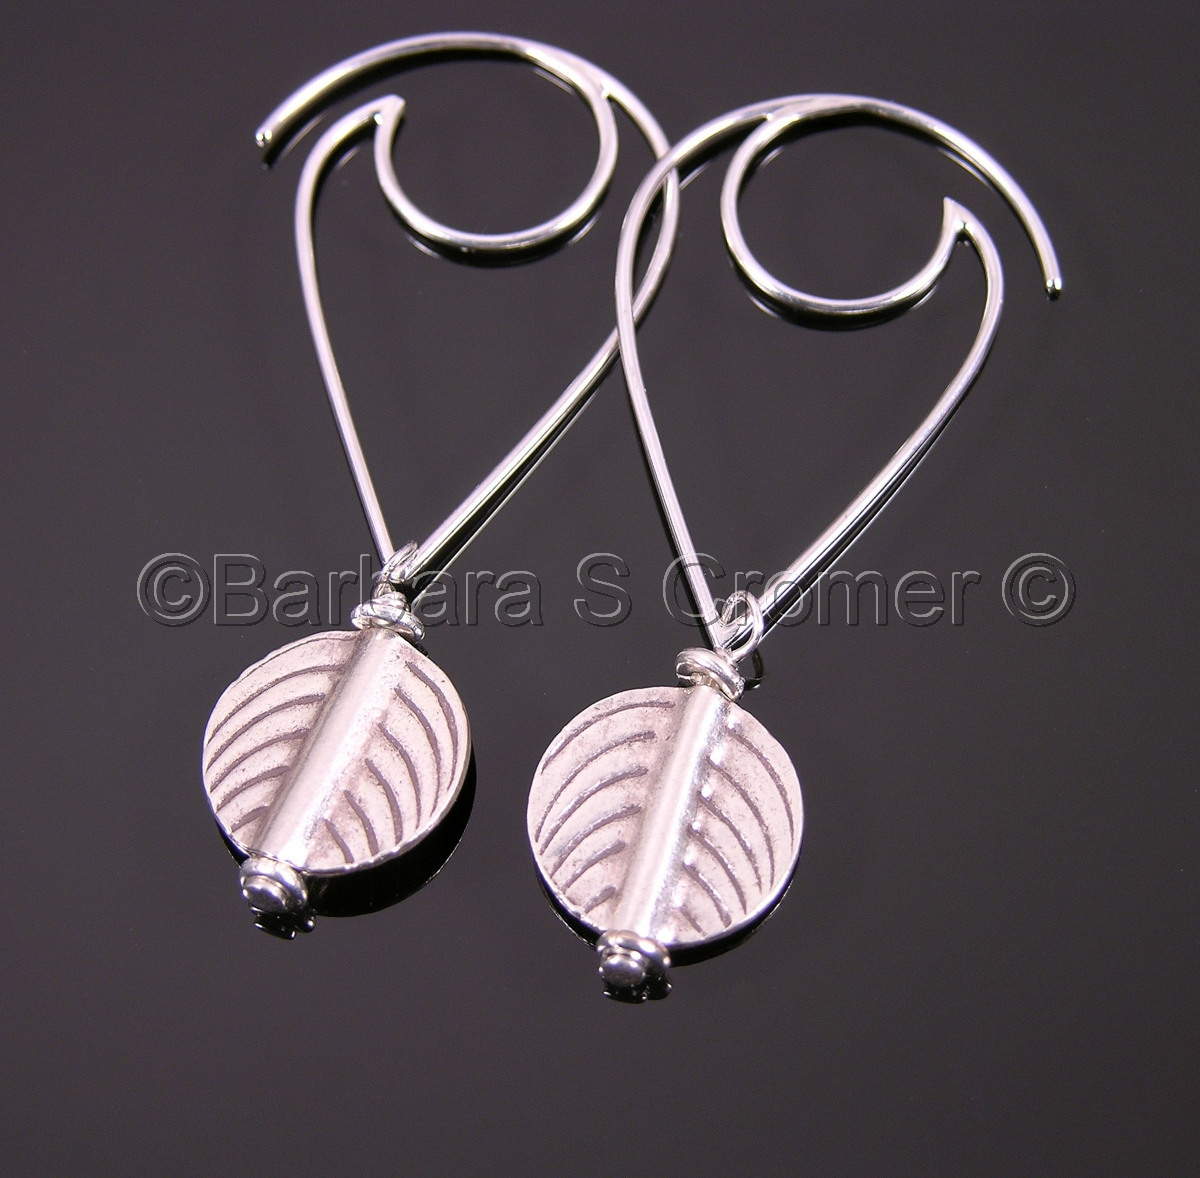 Modern silver leaf earrings (large view)